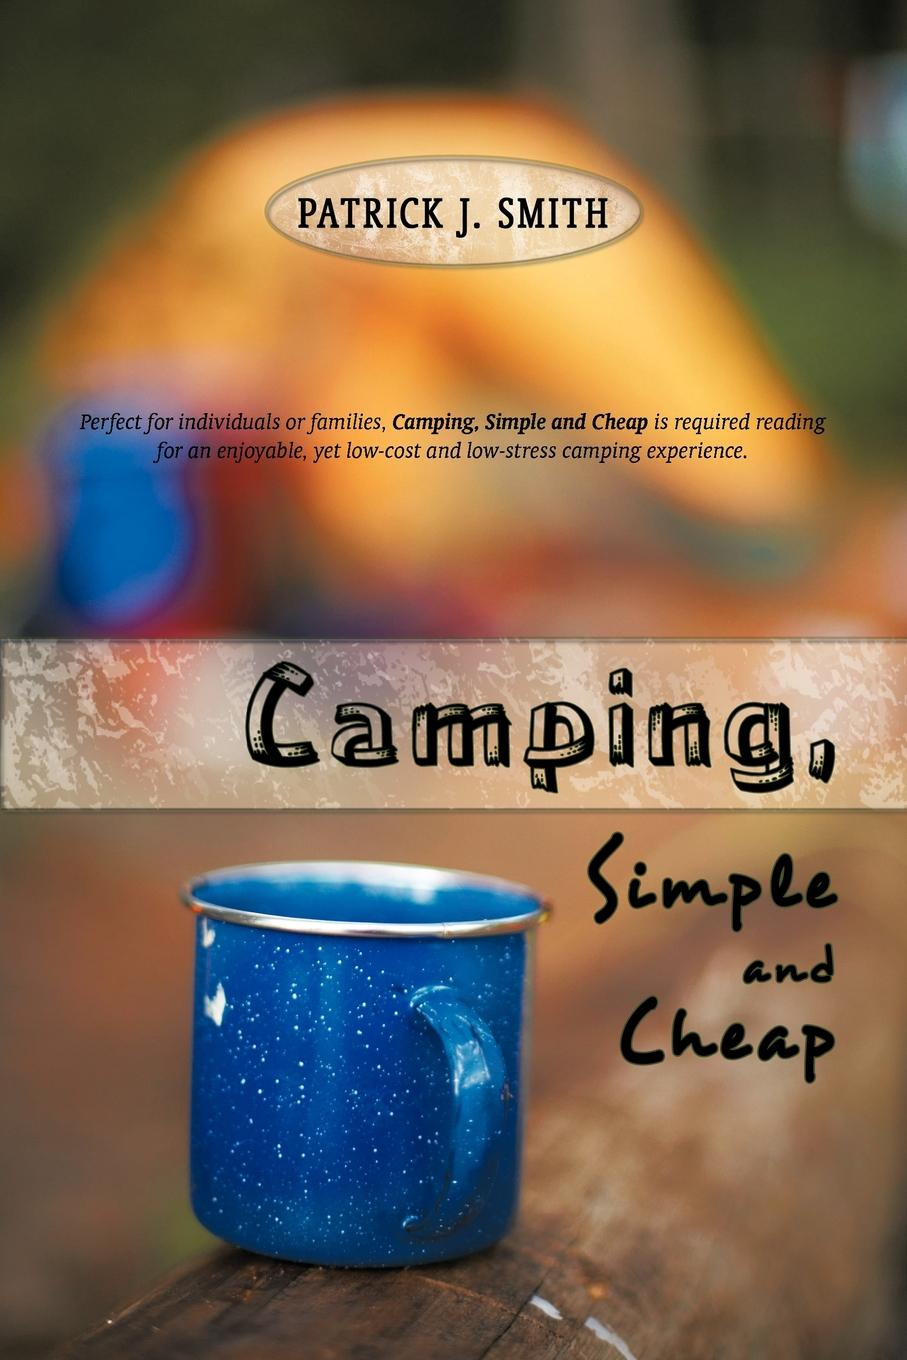 J. Smith Patrick J. Smith, Patrick J. Smith Camping, Simple and Cheap все цены